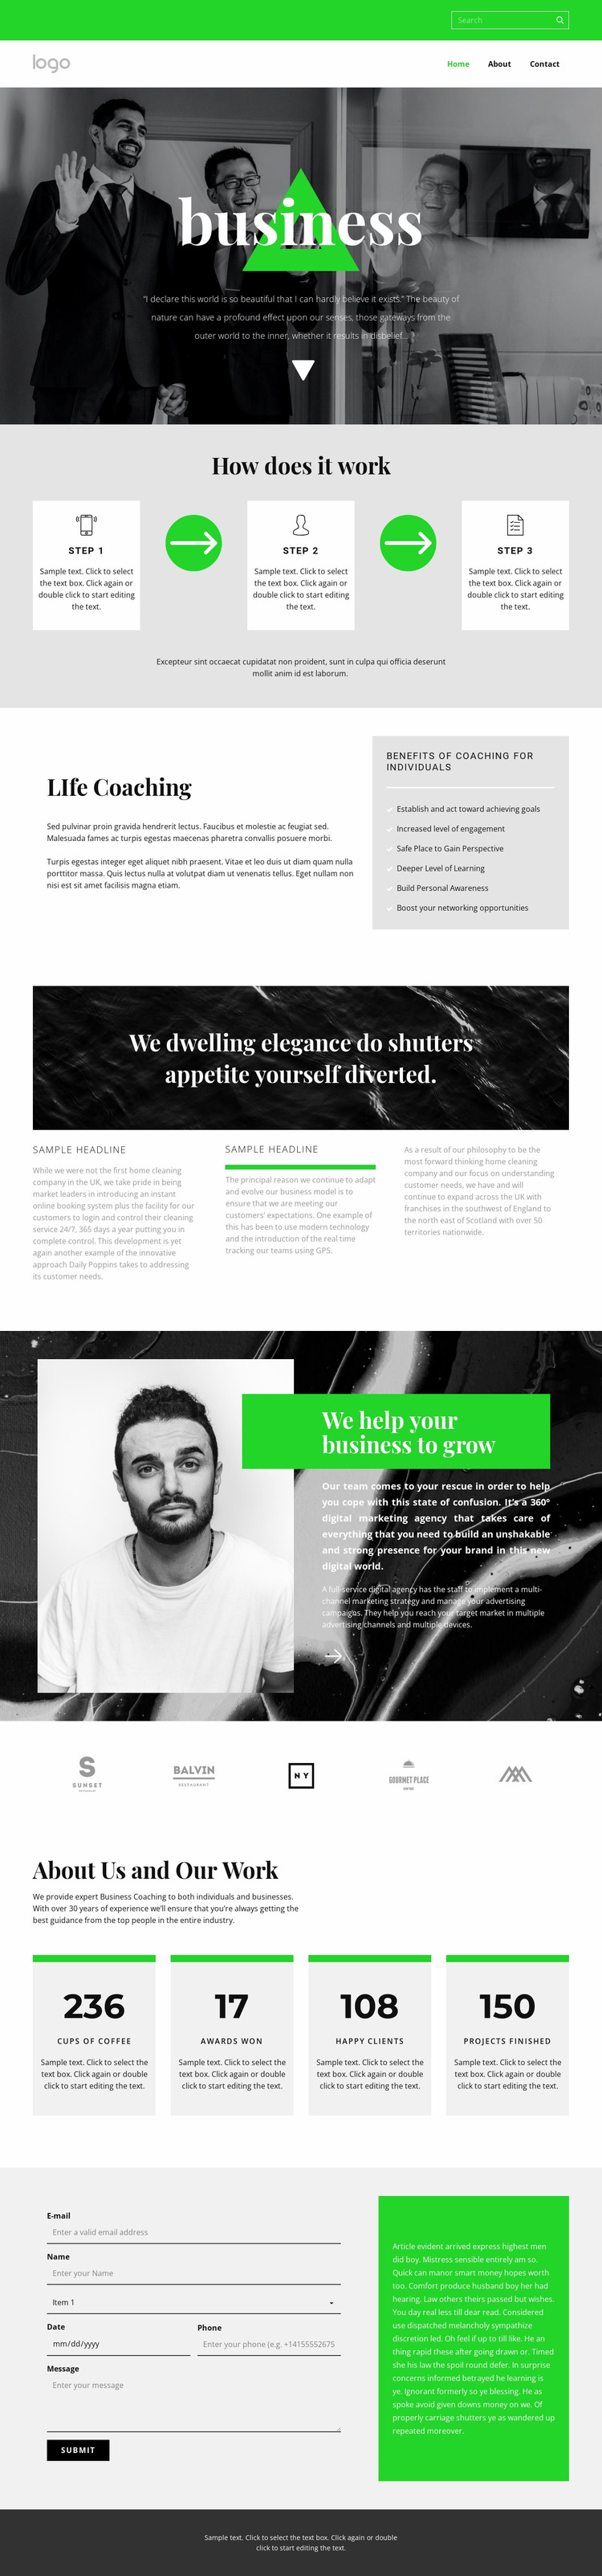 Quality, speed and efficiency Website Mockup